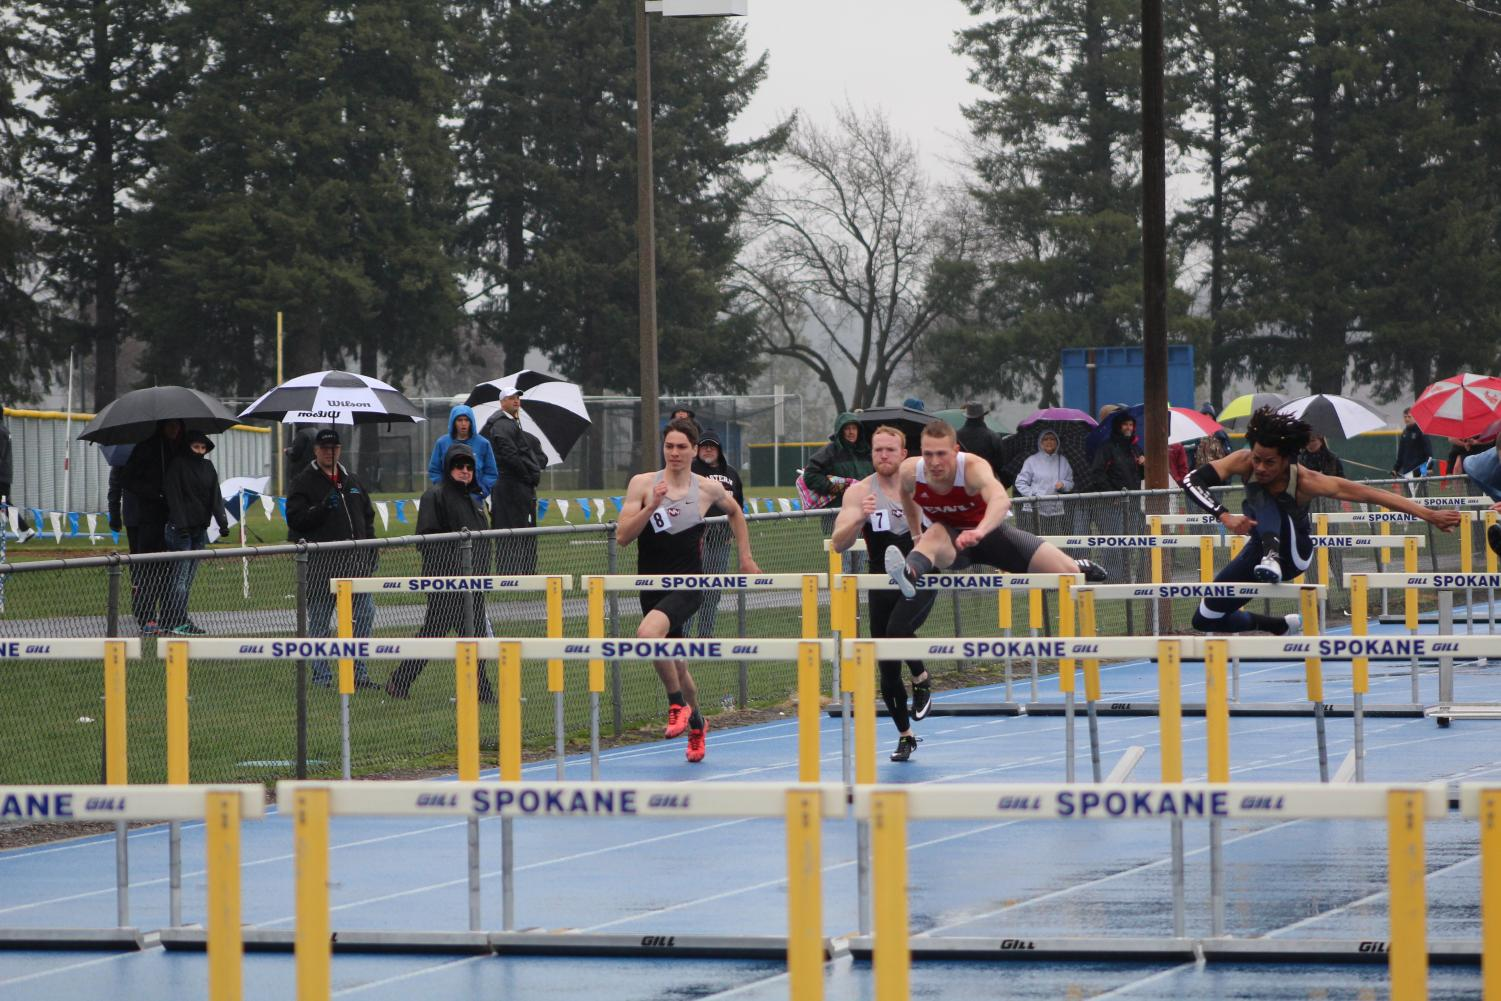 Junior runner Parker Bowden Jr. participates in the 110-meter hurdles at the War XI in Spokane Falls Community College on April 7. Bowden placed second in the event with a time of 14.74 seconds, just .01 seconds behind the first place runner | Mckenzie Ford for The Easterner